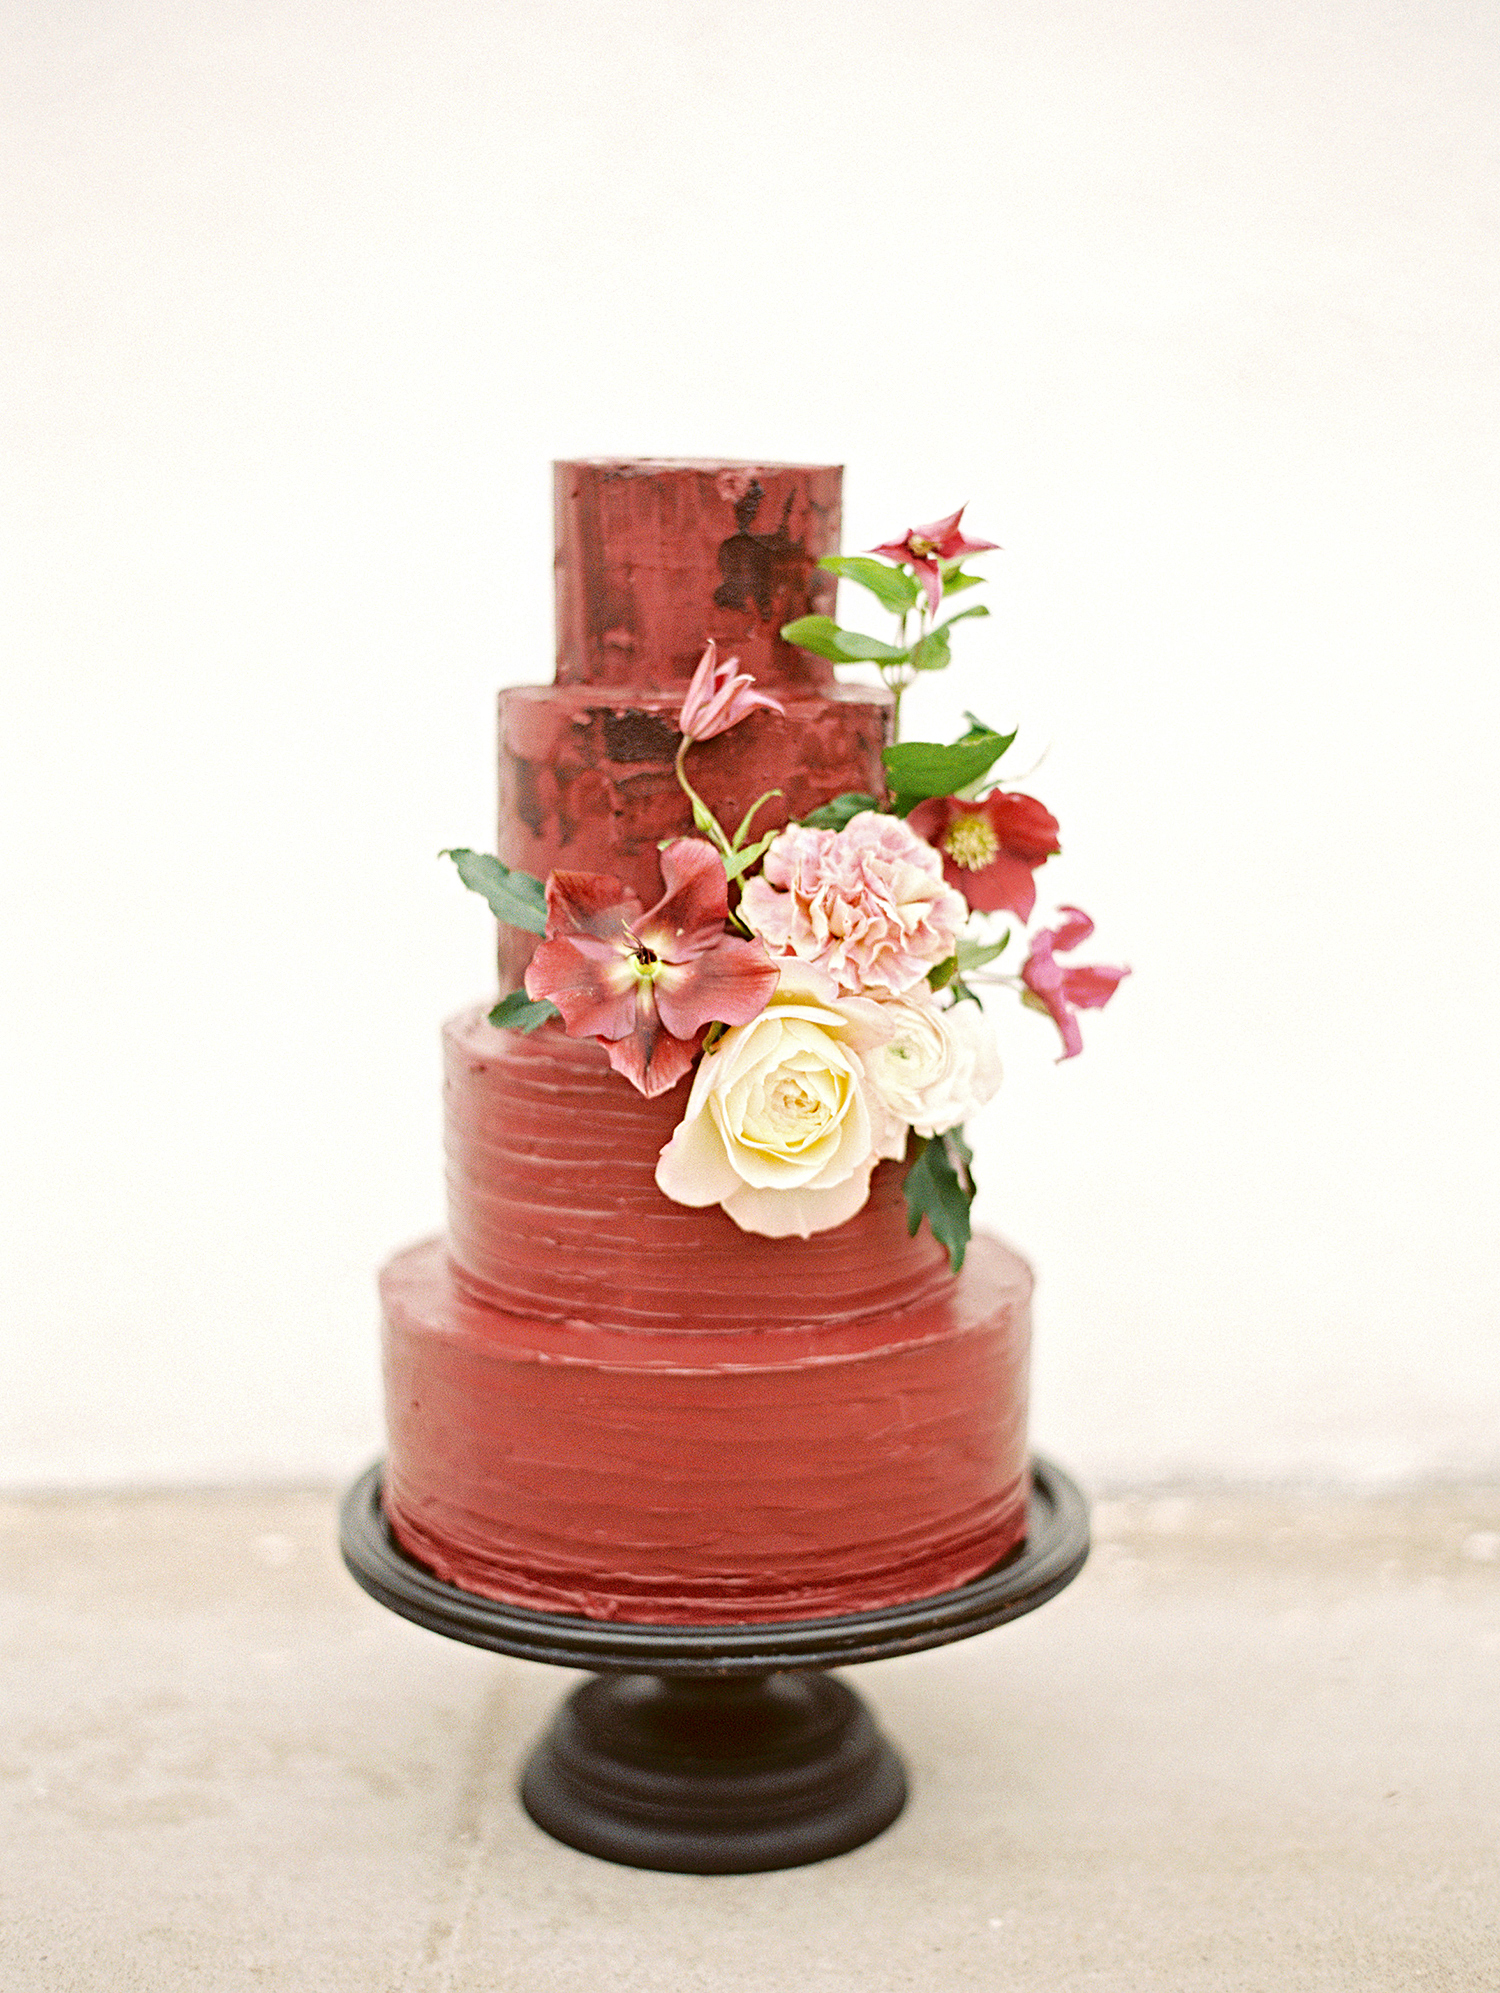 red velvet tiered cake with blooms